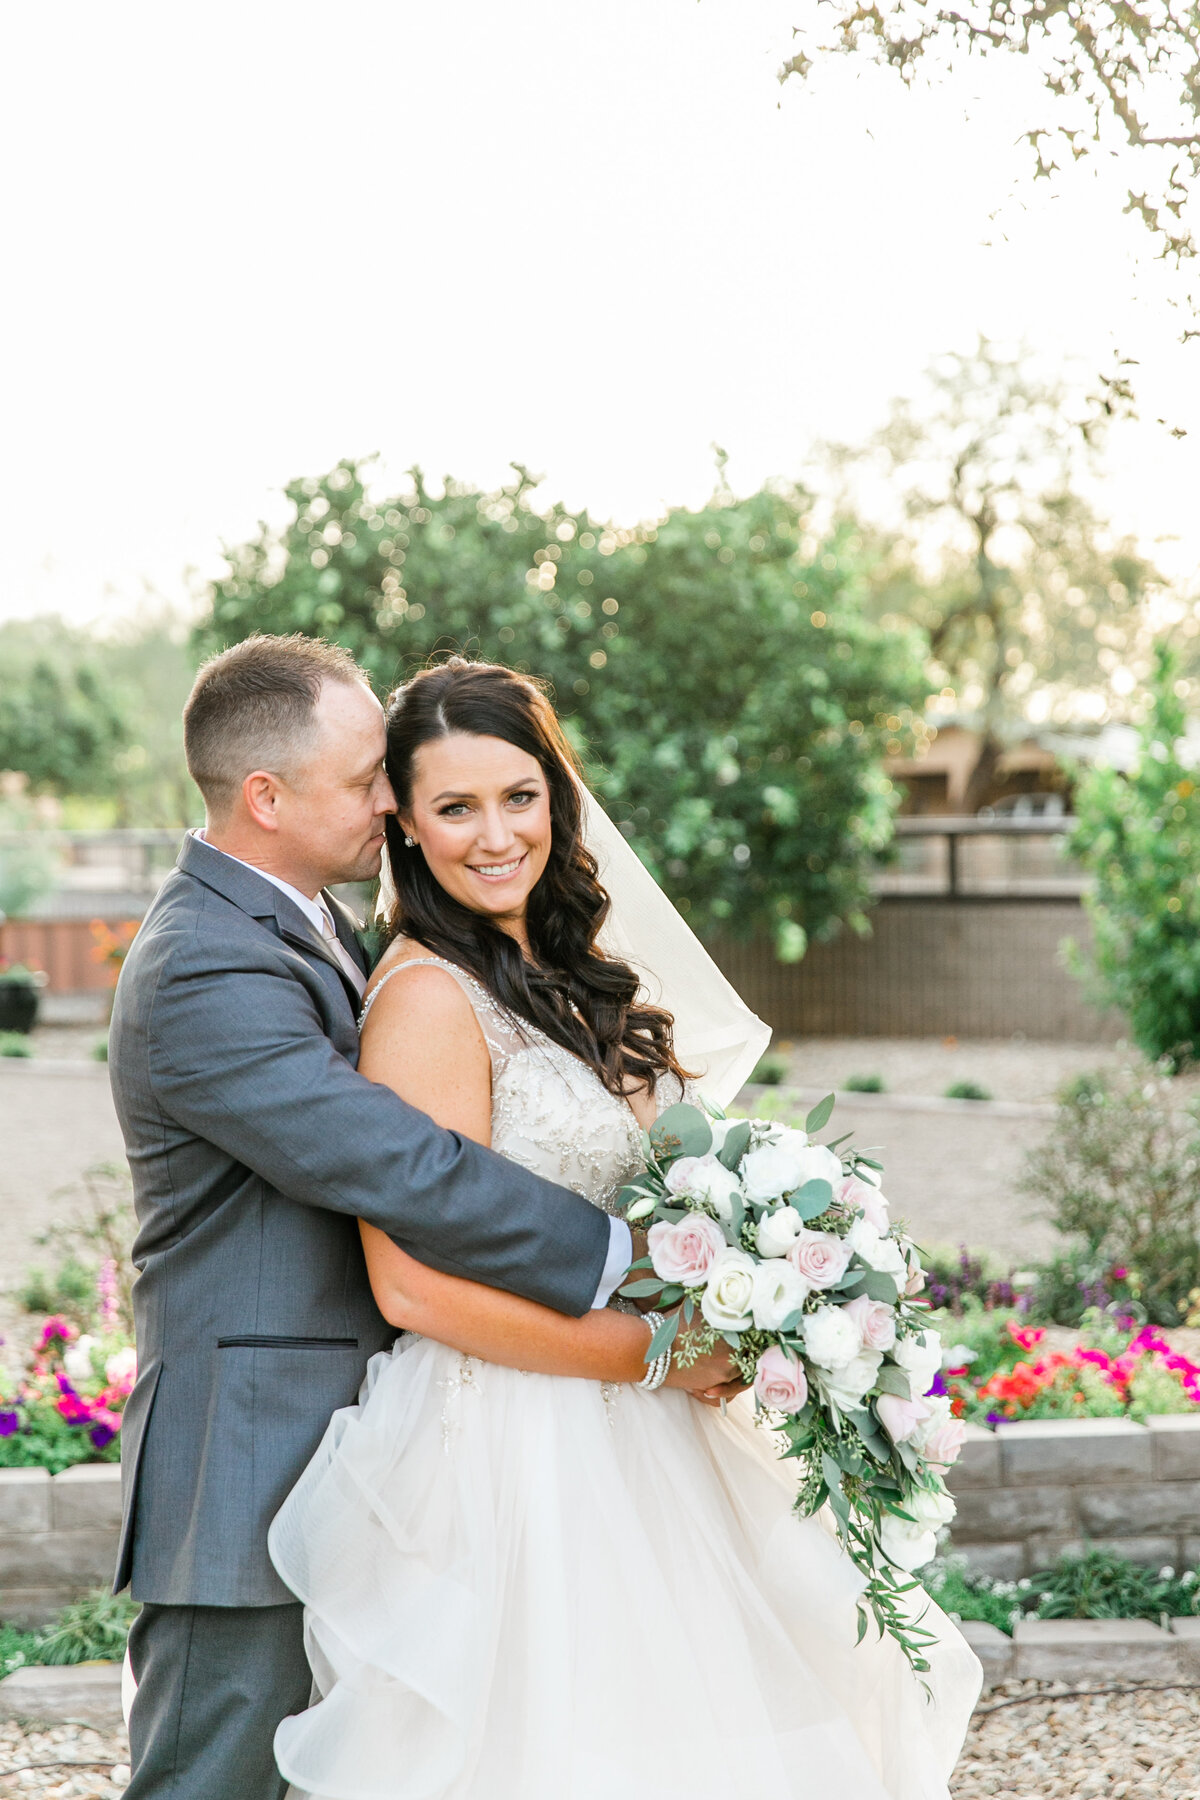 Karlie Colleen Photography - Glendale Arizona Backyard ranch wedding - Meghan & Ken-454